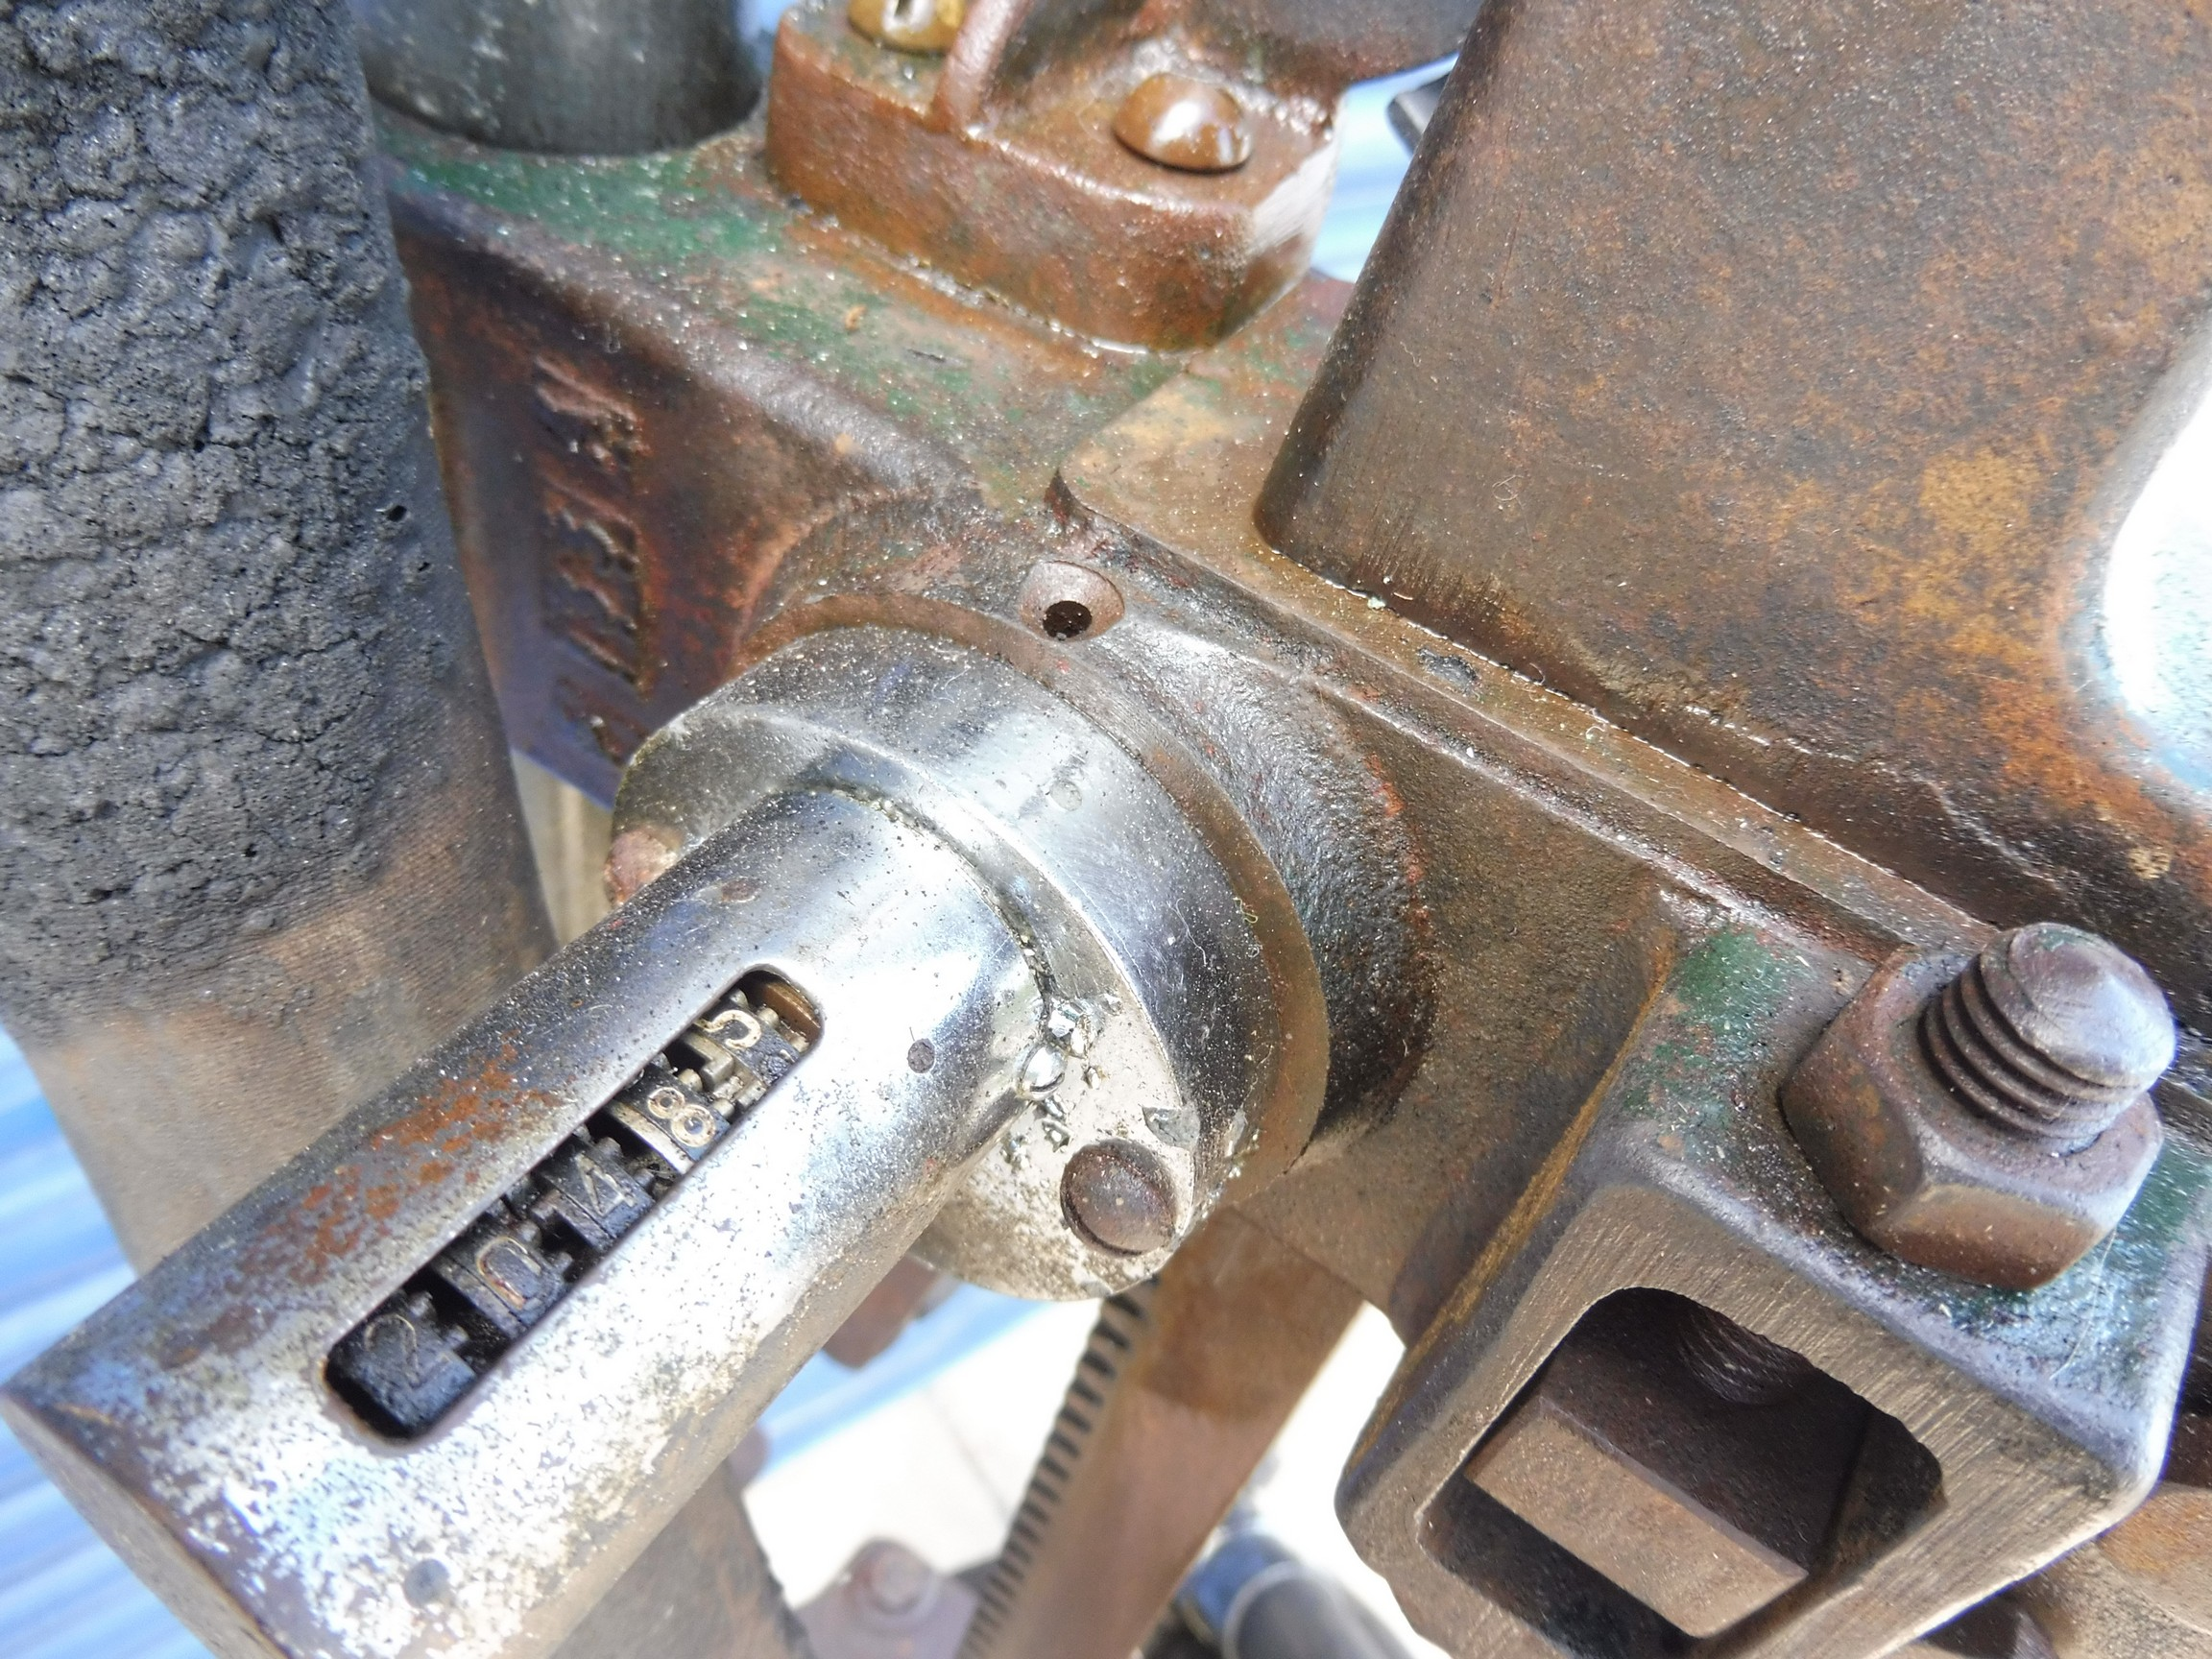 A Godwin hand-operated petrol pump with rubber hose and bronze nozzle. - Image 2 of 4